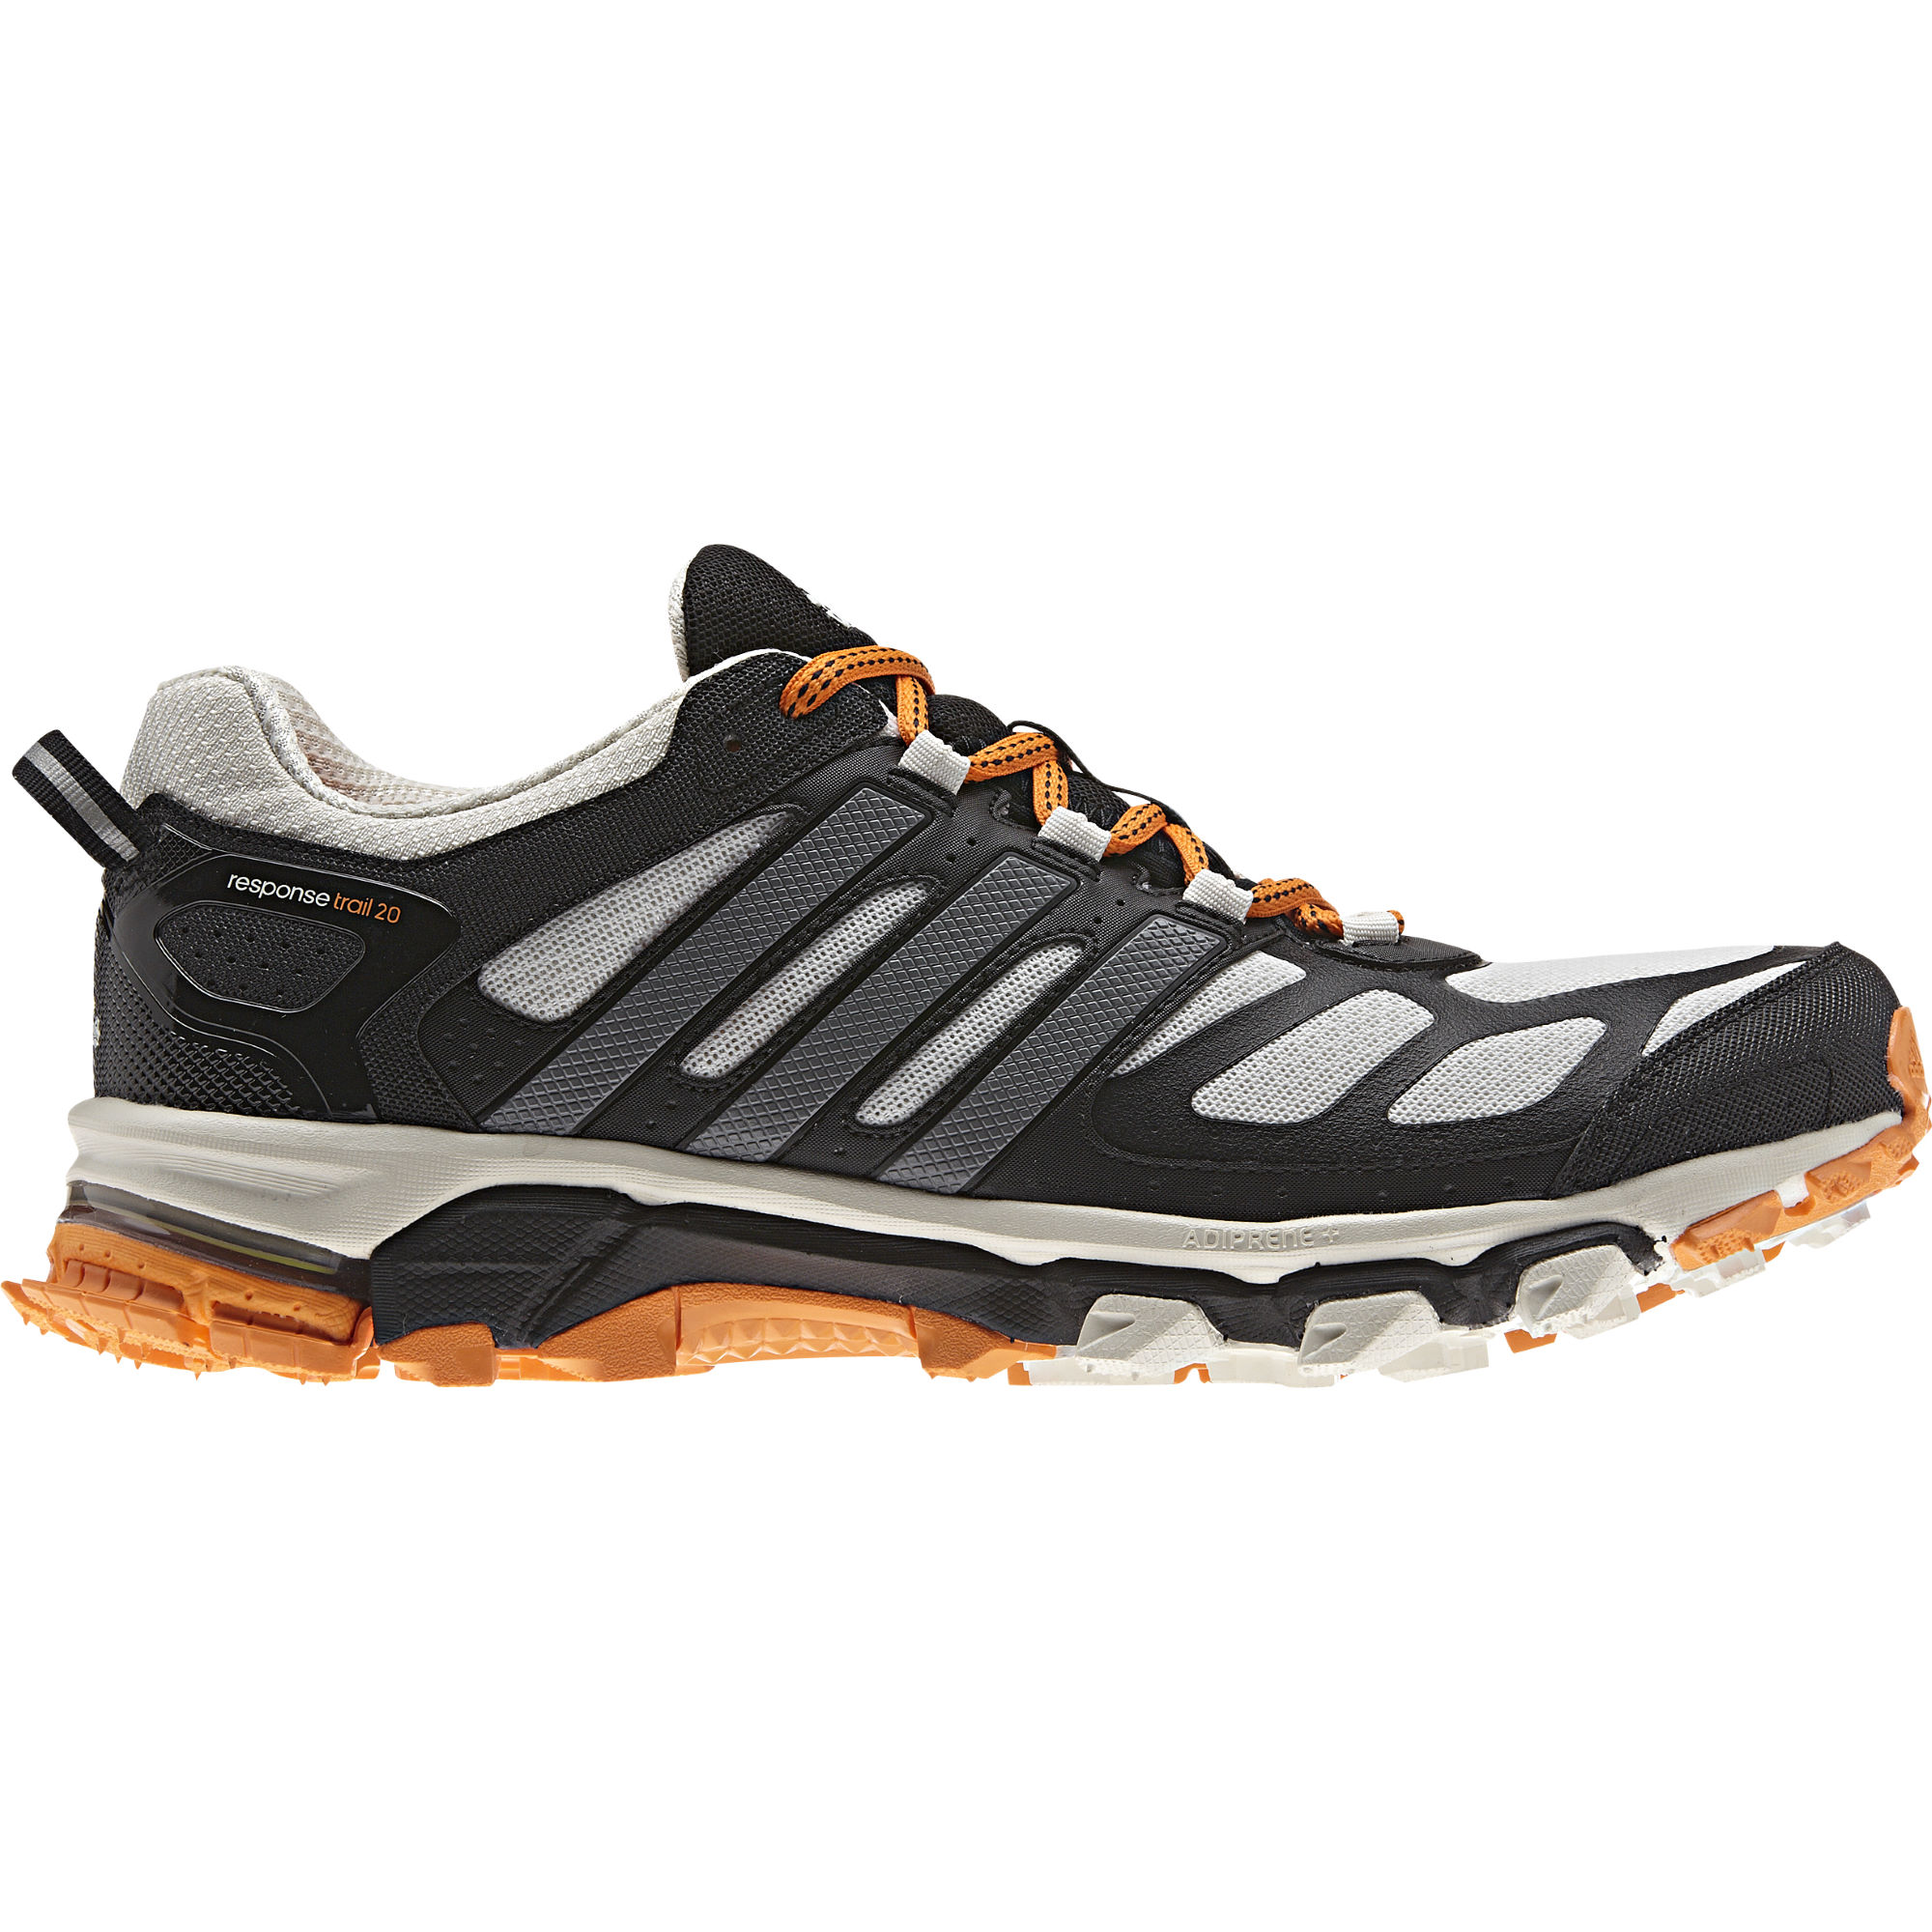 wiggle adidas response trail 20 shoes ss14 offroad. Black Bedroom Furniture Sets. Home Design Ideas